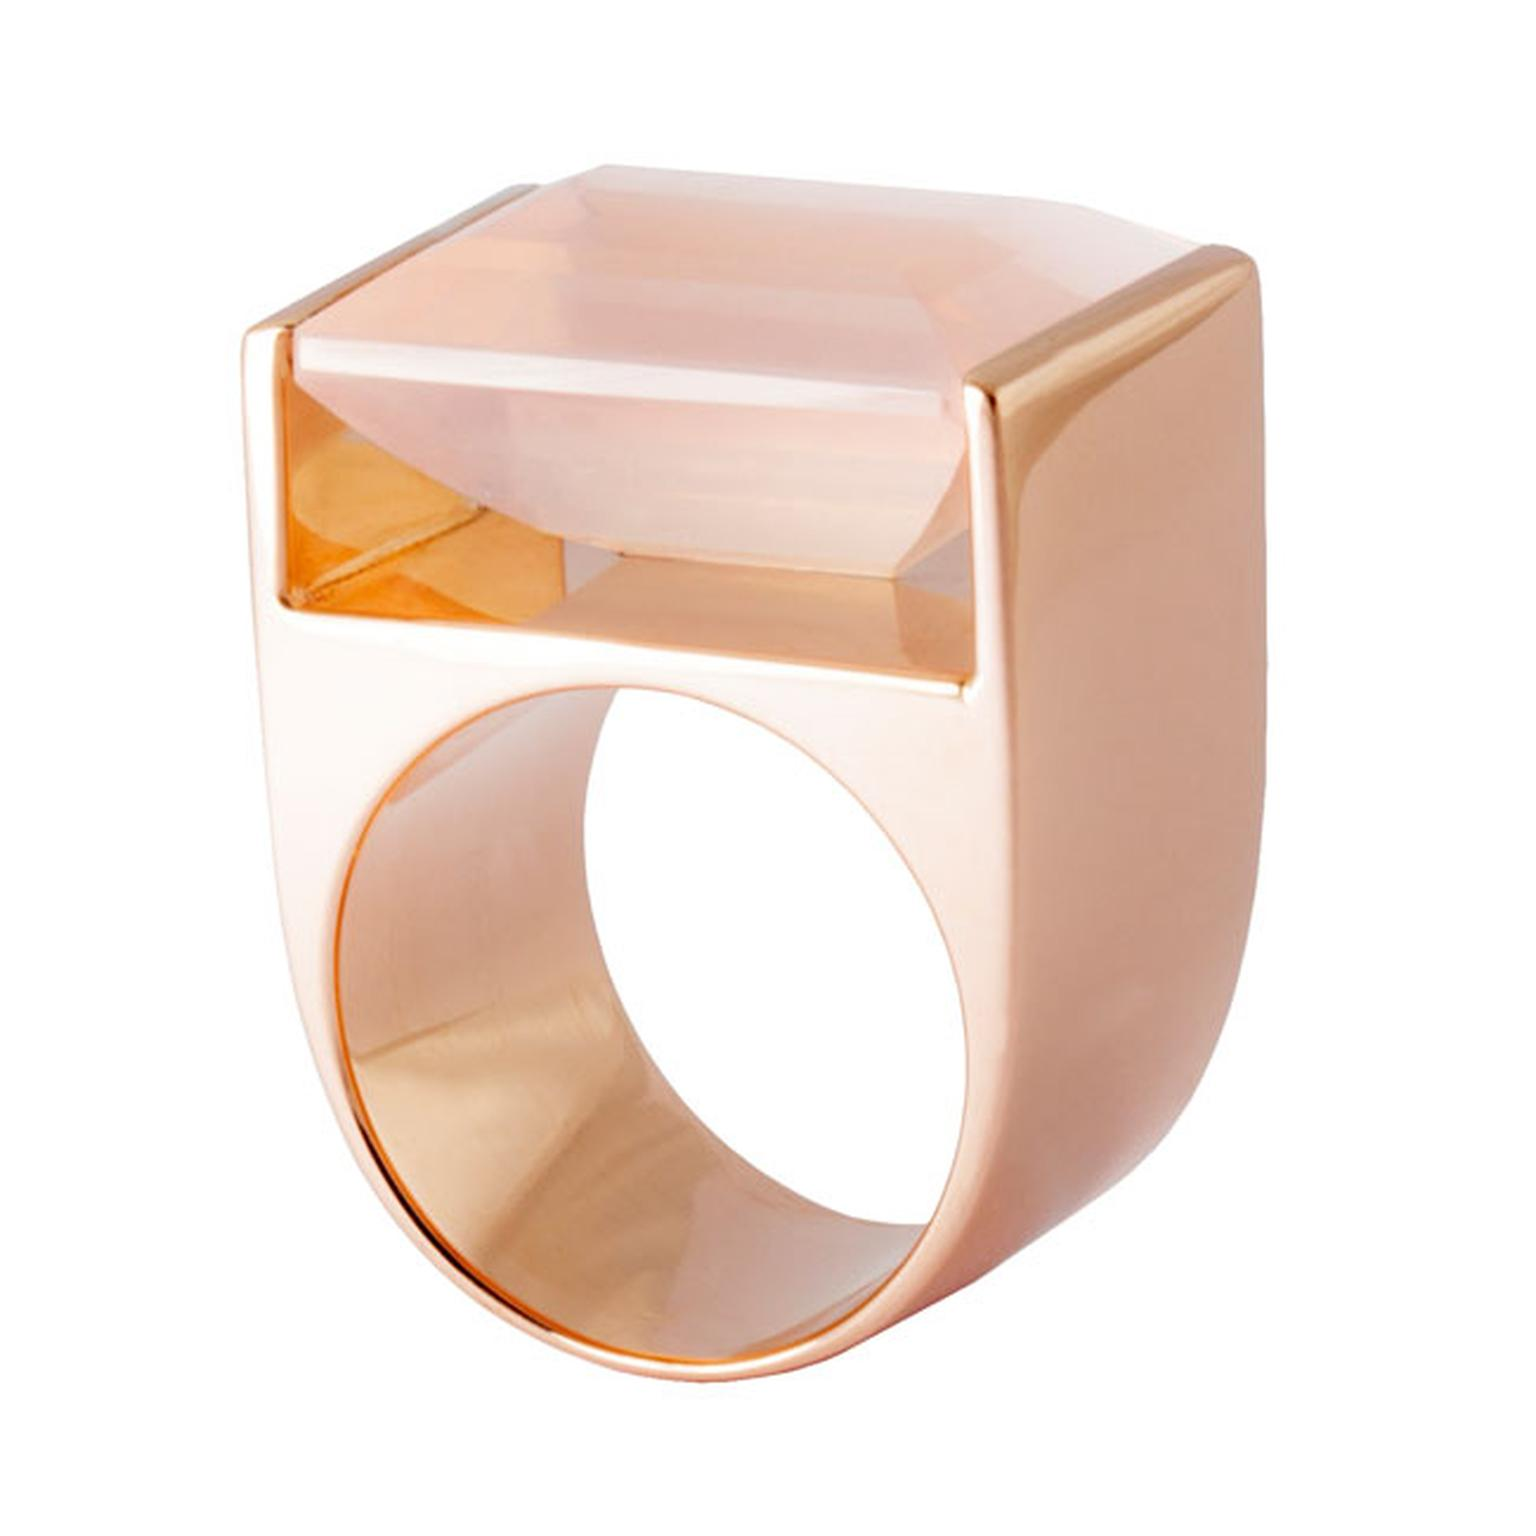 Kattri Quadrant Tall rose gold and rose quartz ring_main